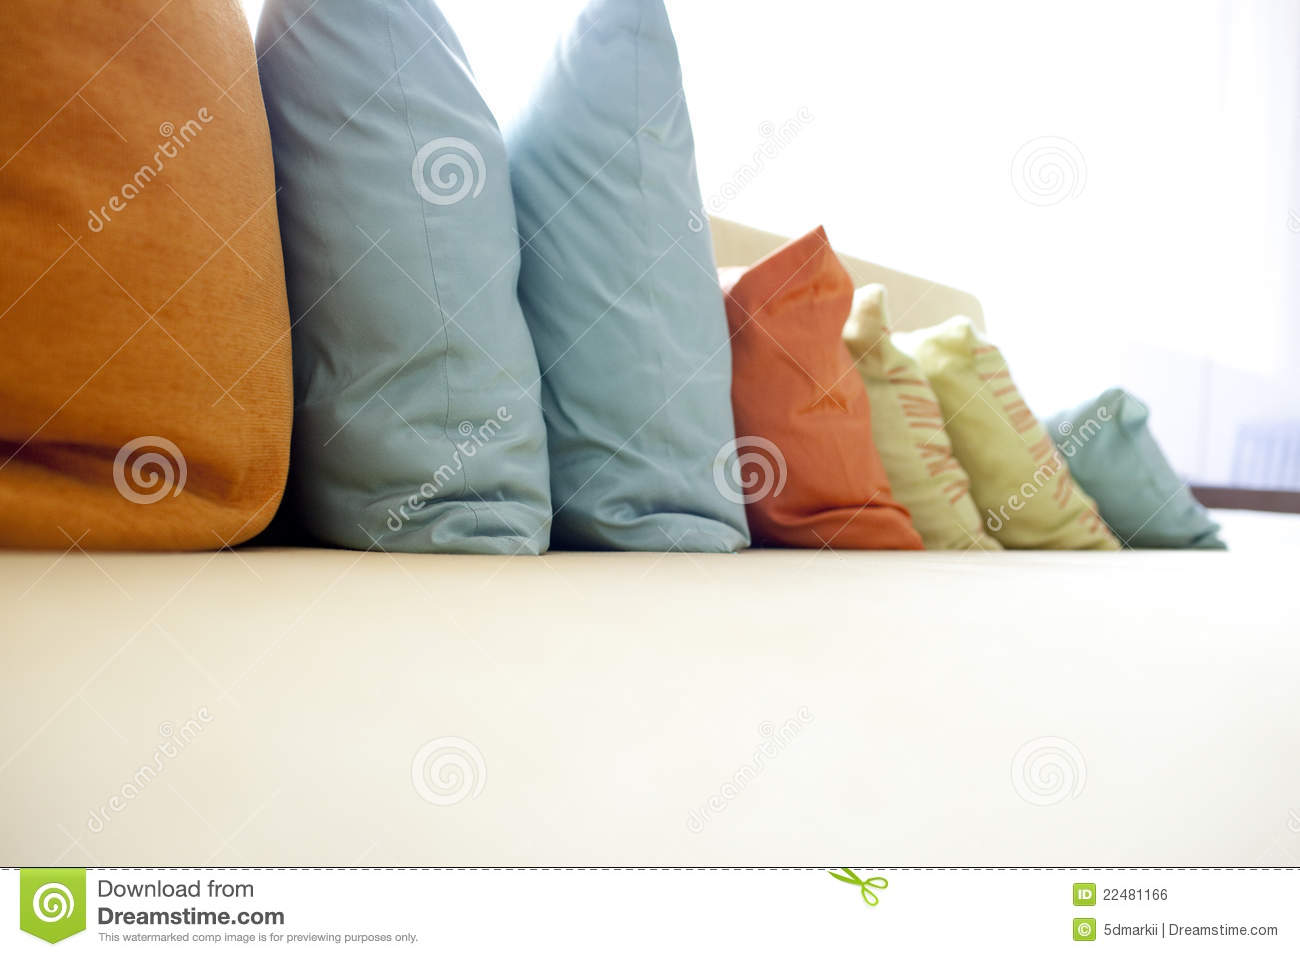 sofa and hold pillow - photo #14